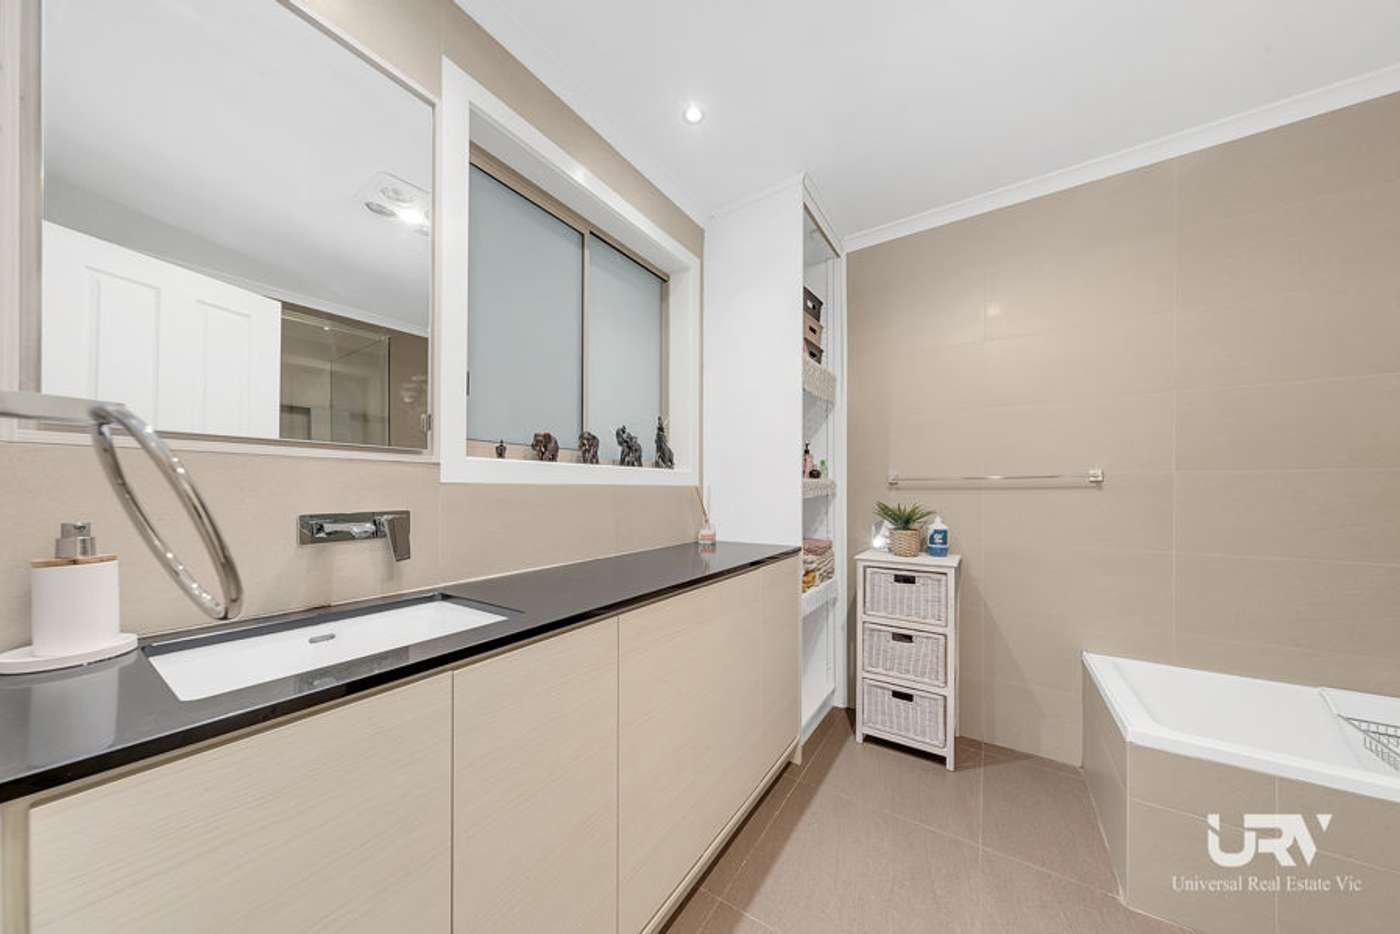 Main view of Homely house listing, 14 Commonwealth Court, Craigieburn VIC 3064